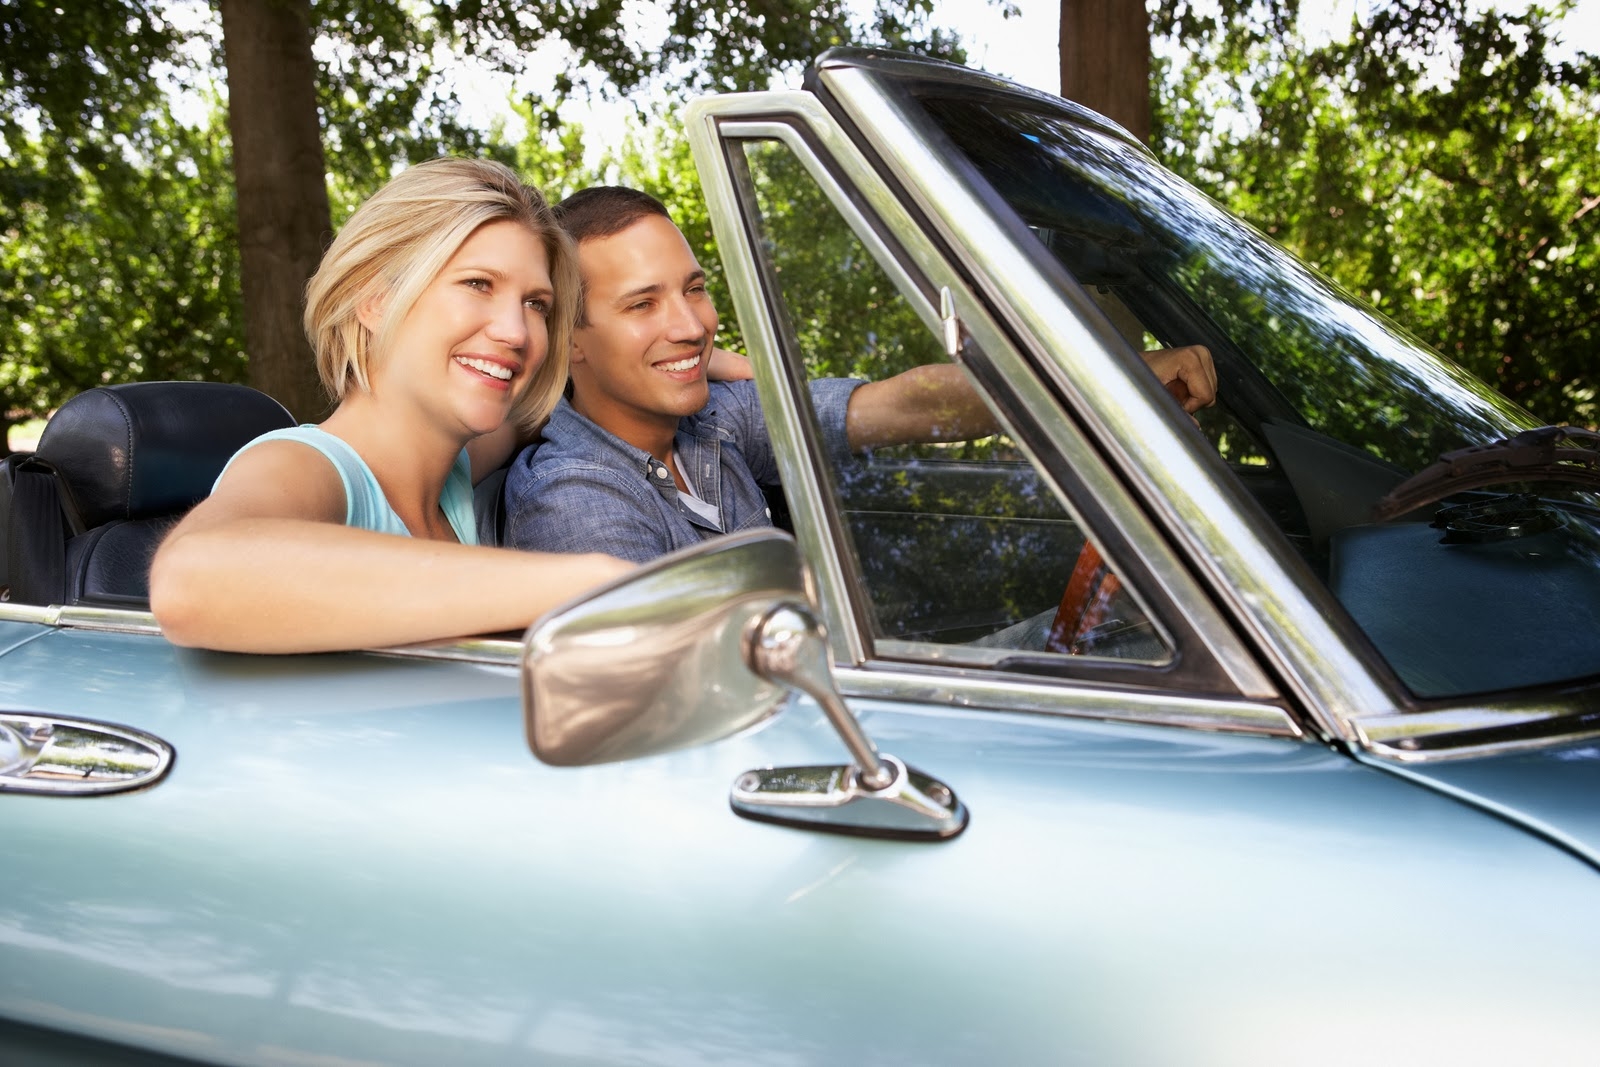 Am I Having a Mid-Life Crisis? - The Marriage and Family